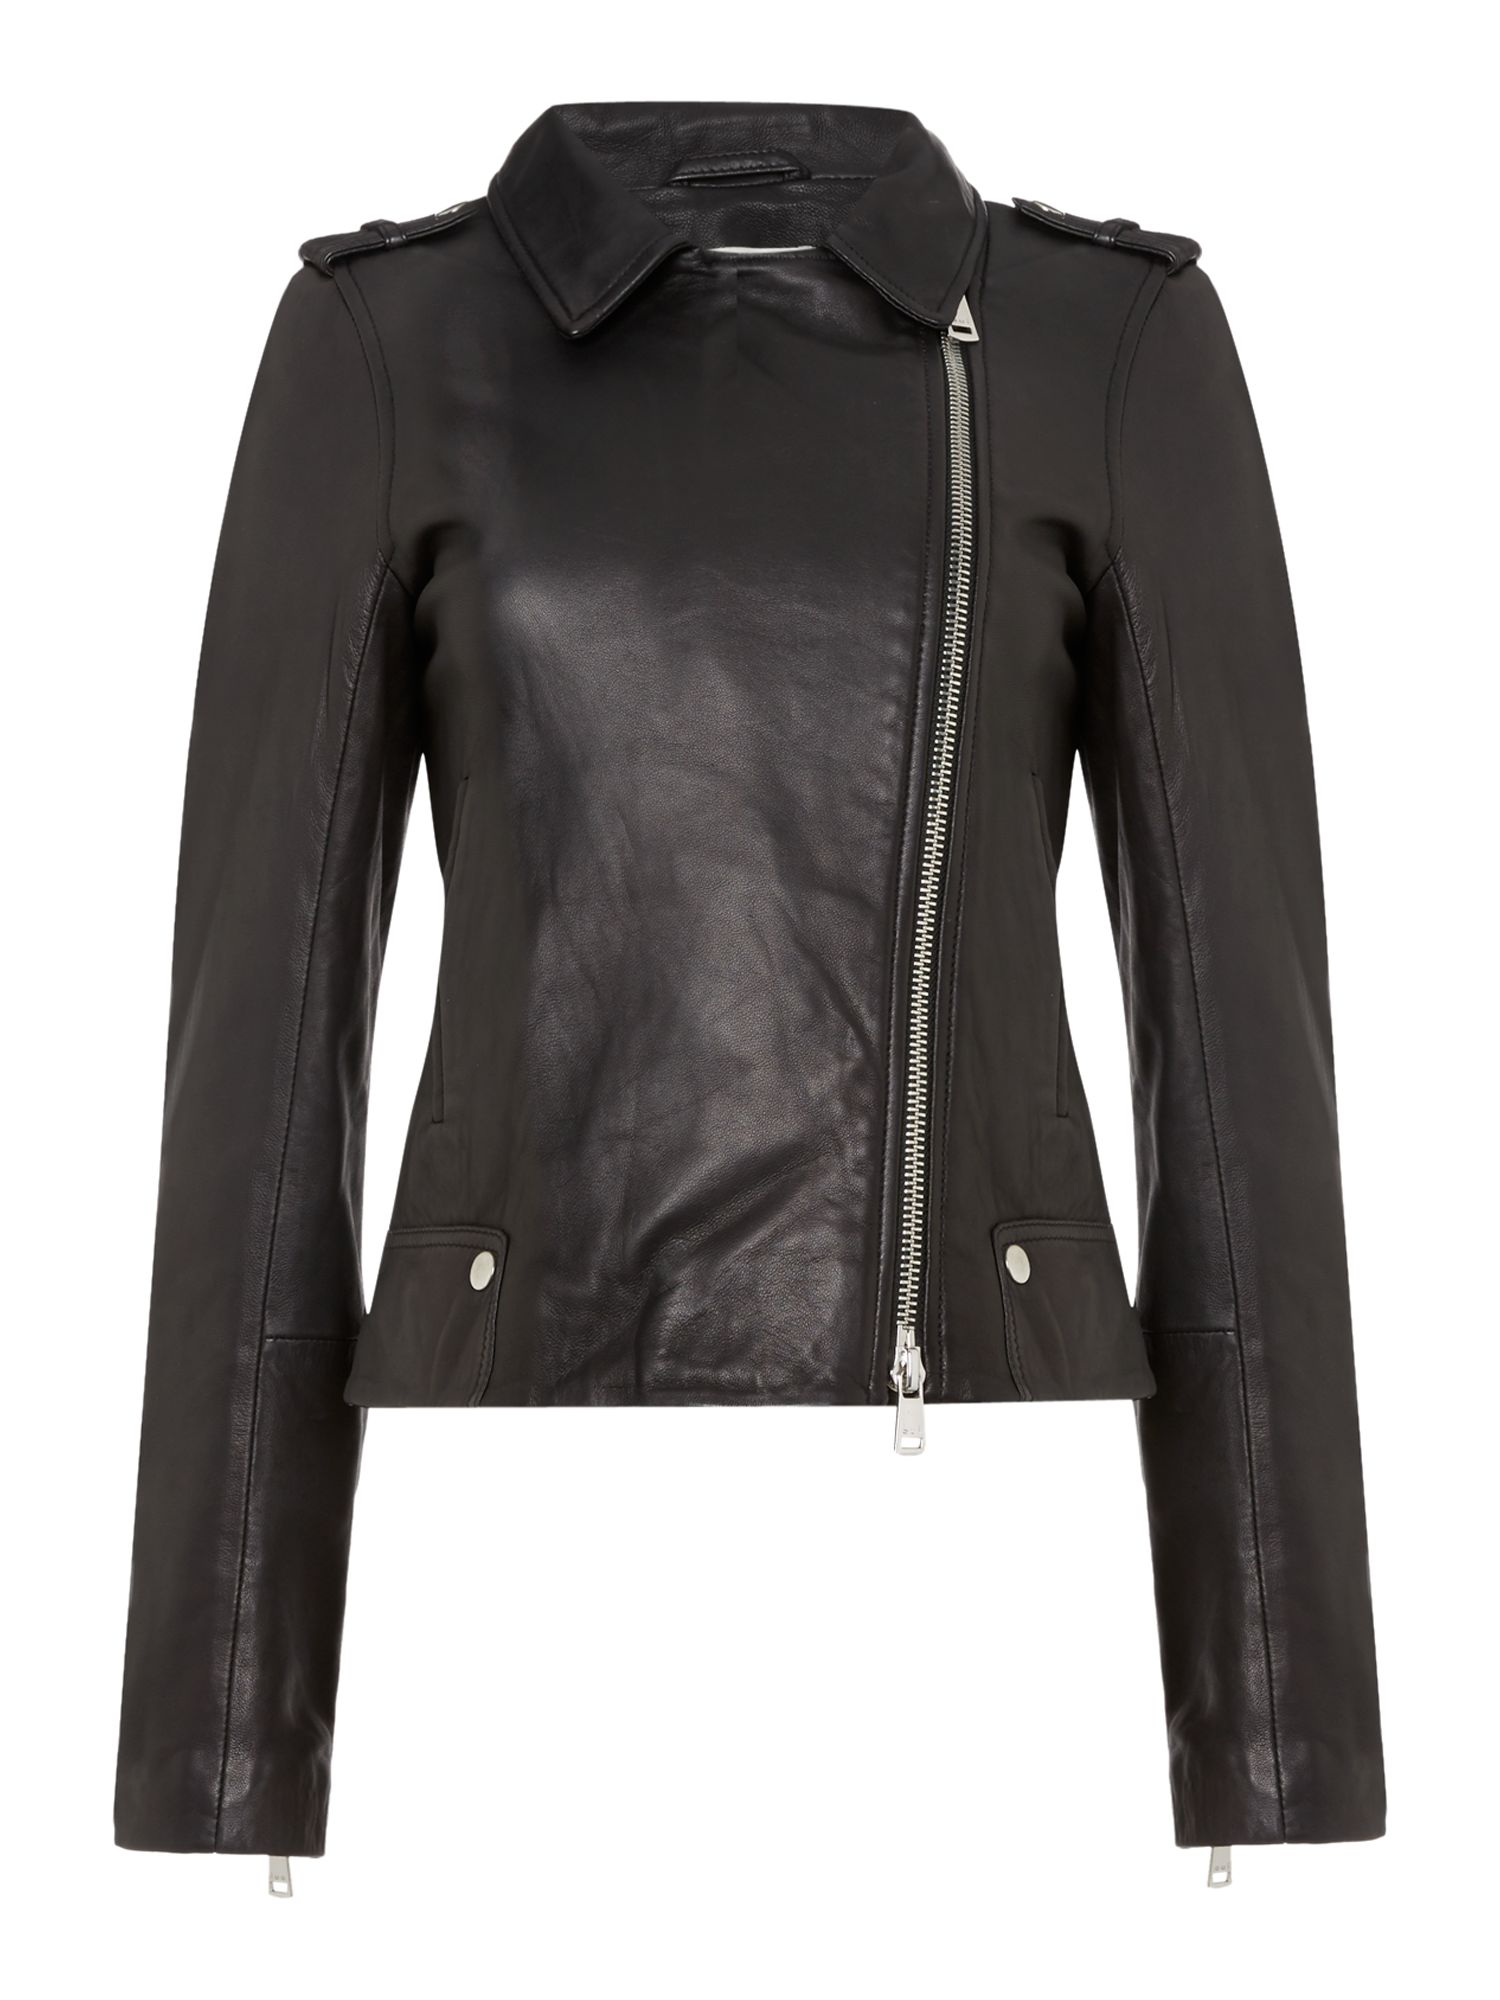 Oui Leather Jacket, Black